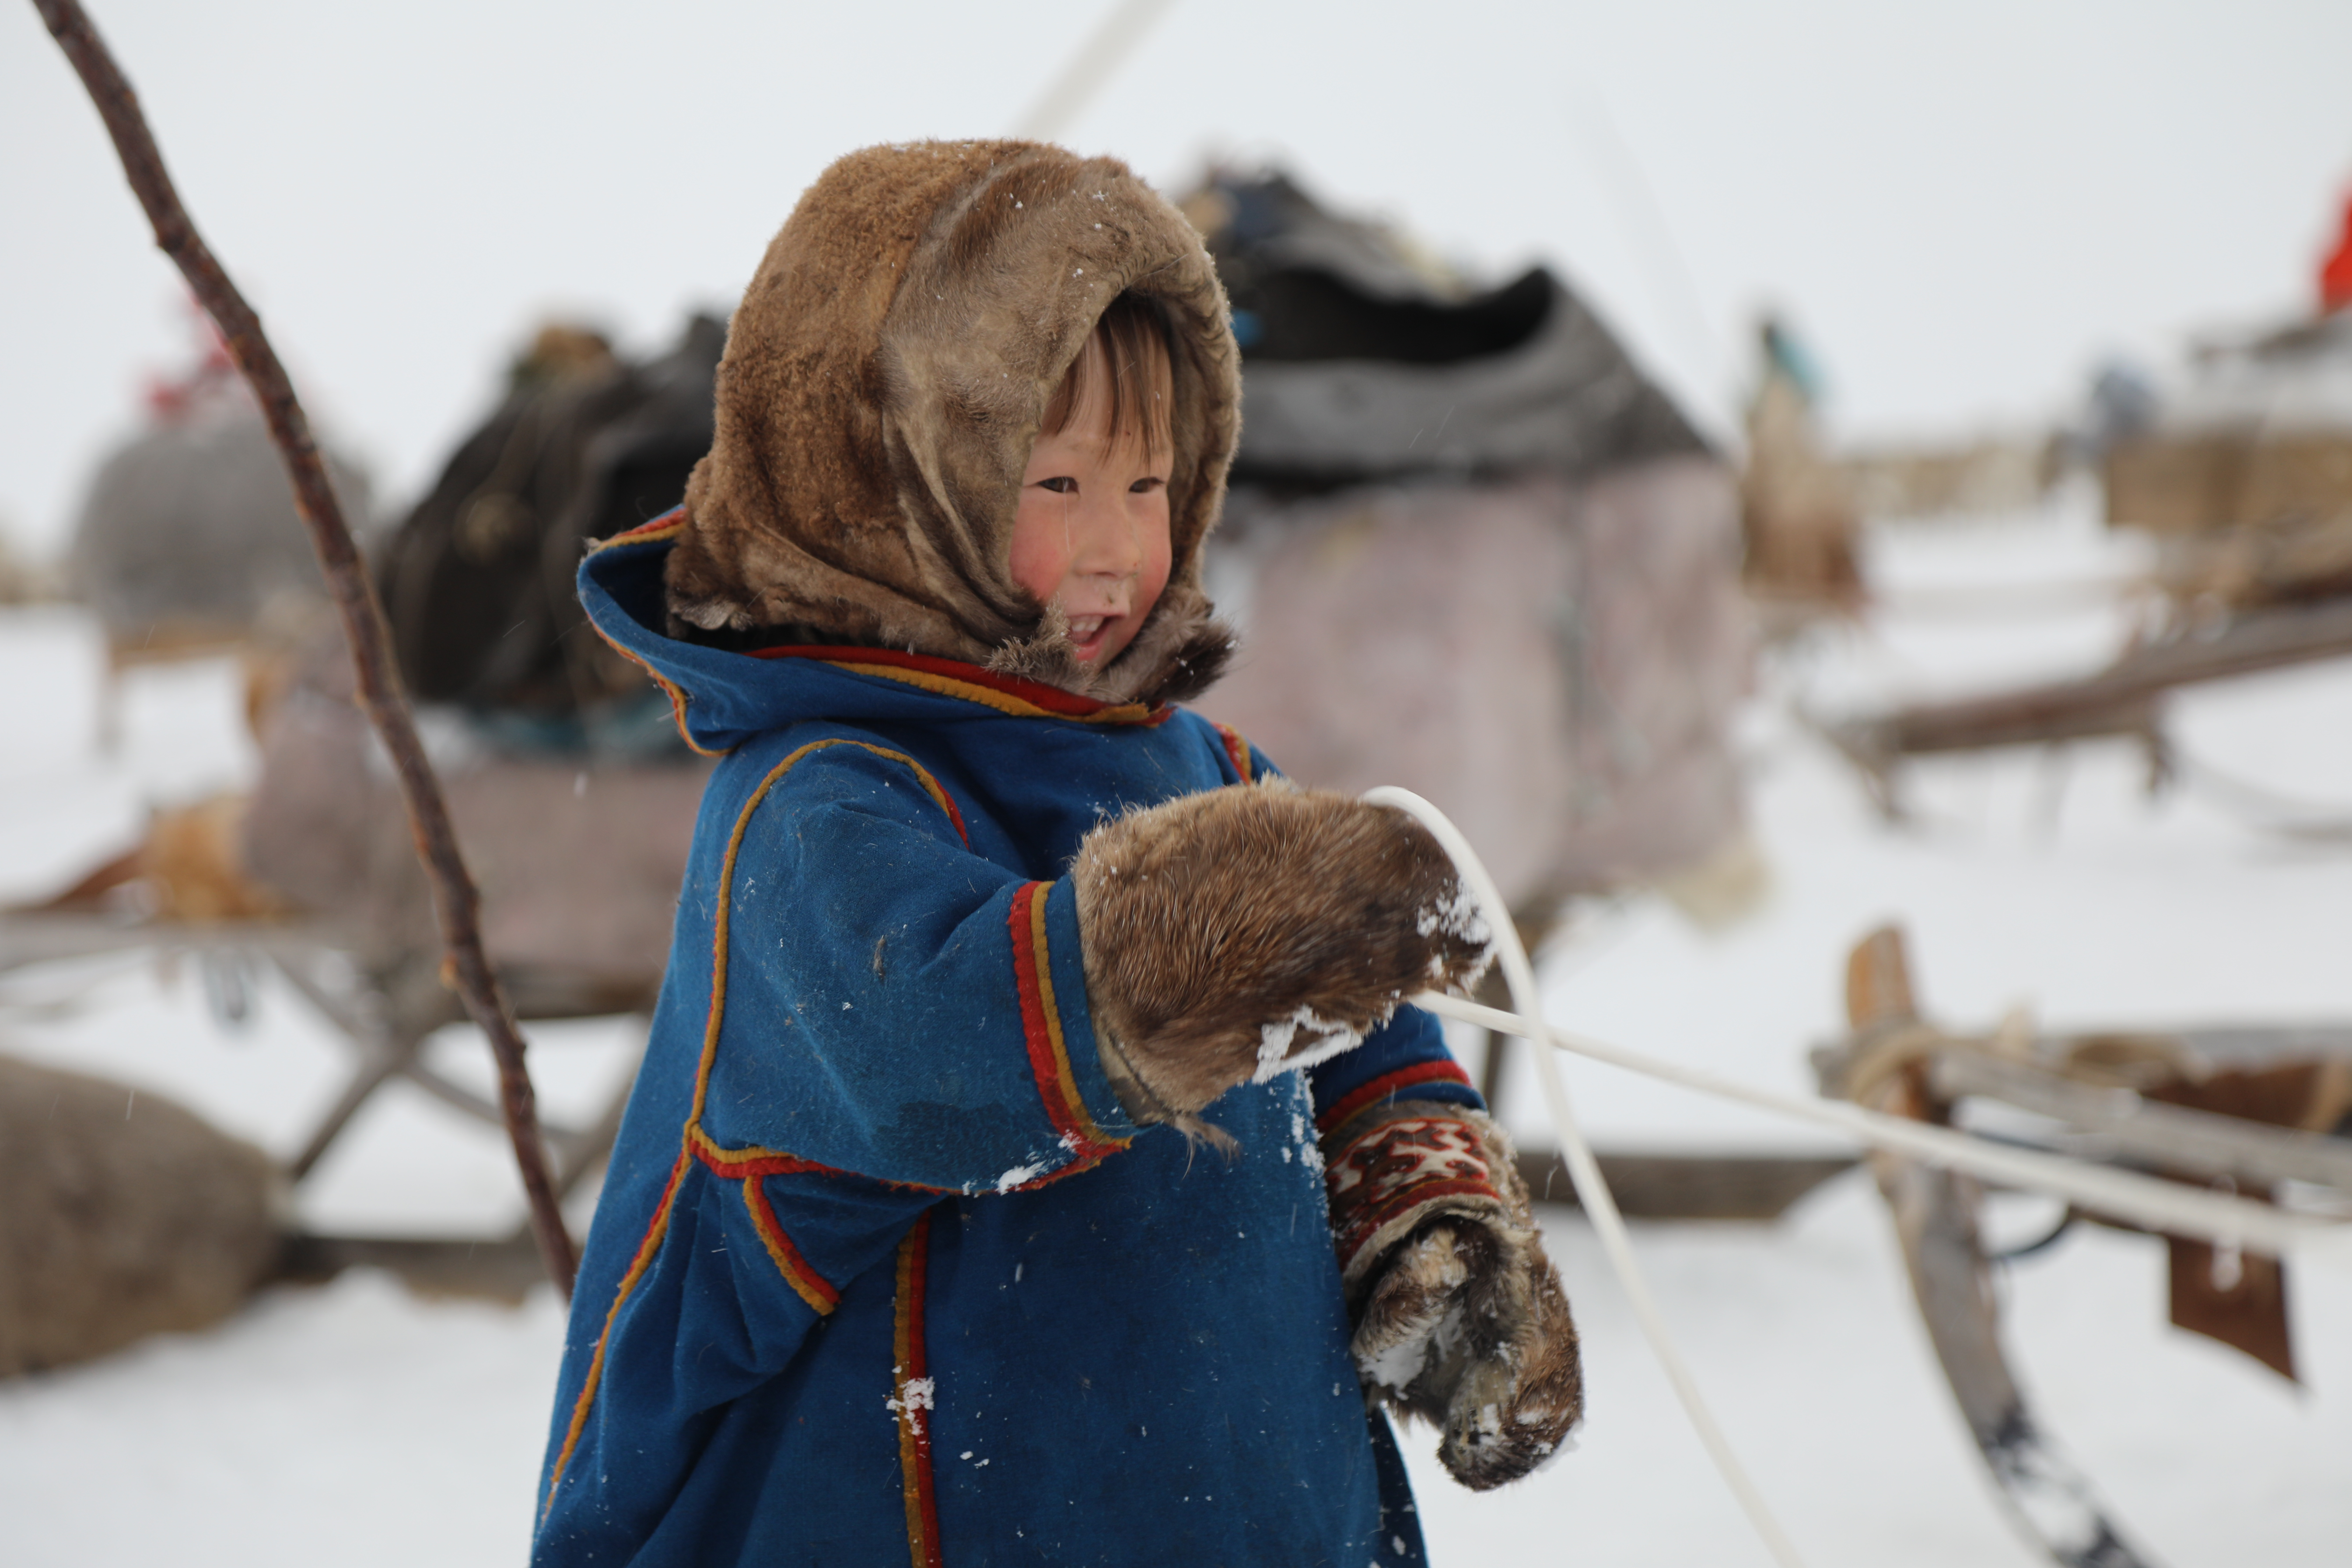 child wearing eskimo gear standing in the snow holding a rope